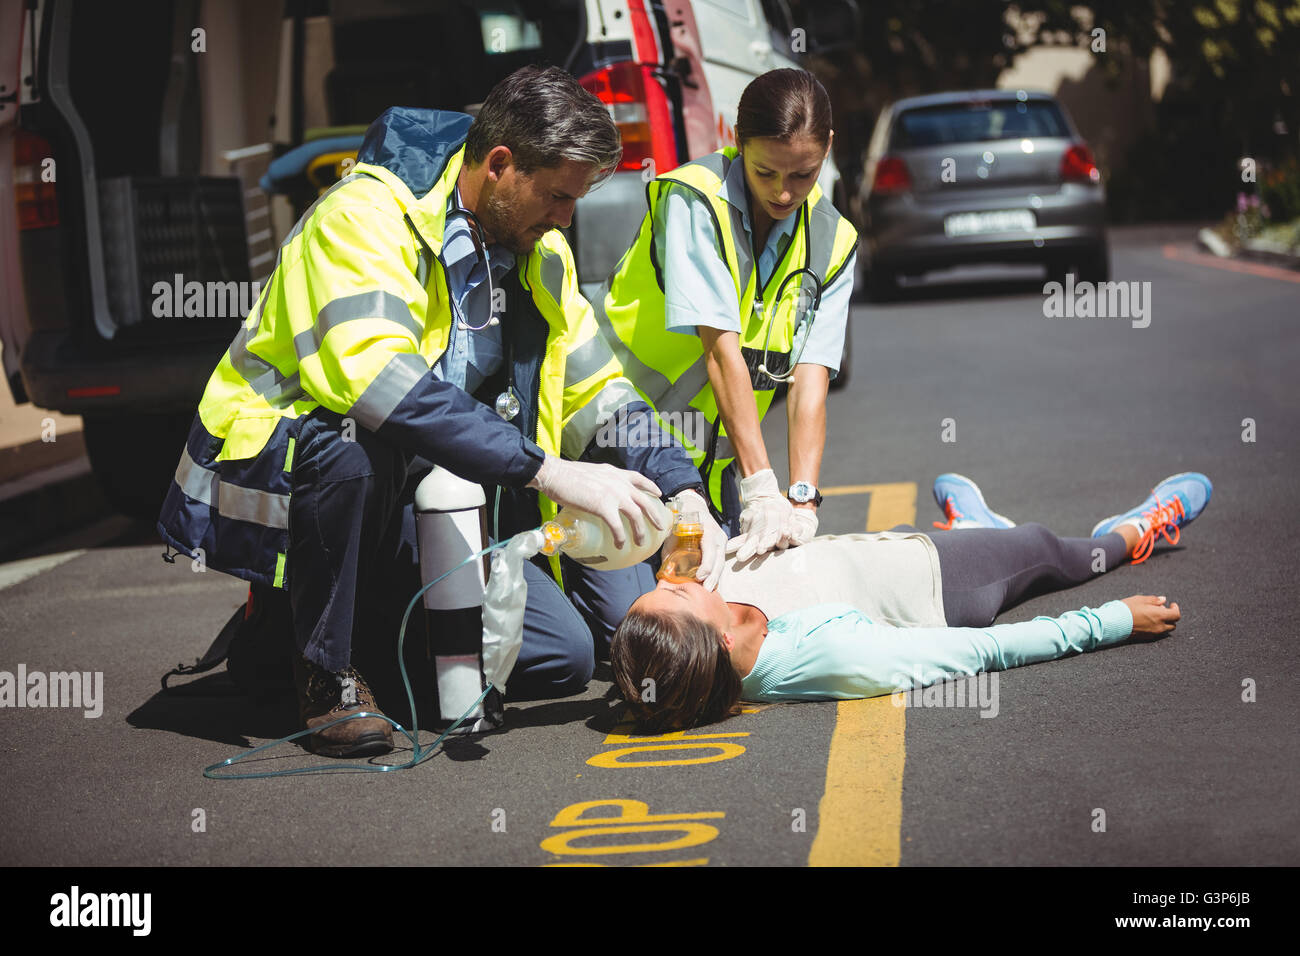 Jogger lying on the road taking in hand by ambulance crew - Stock Image